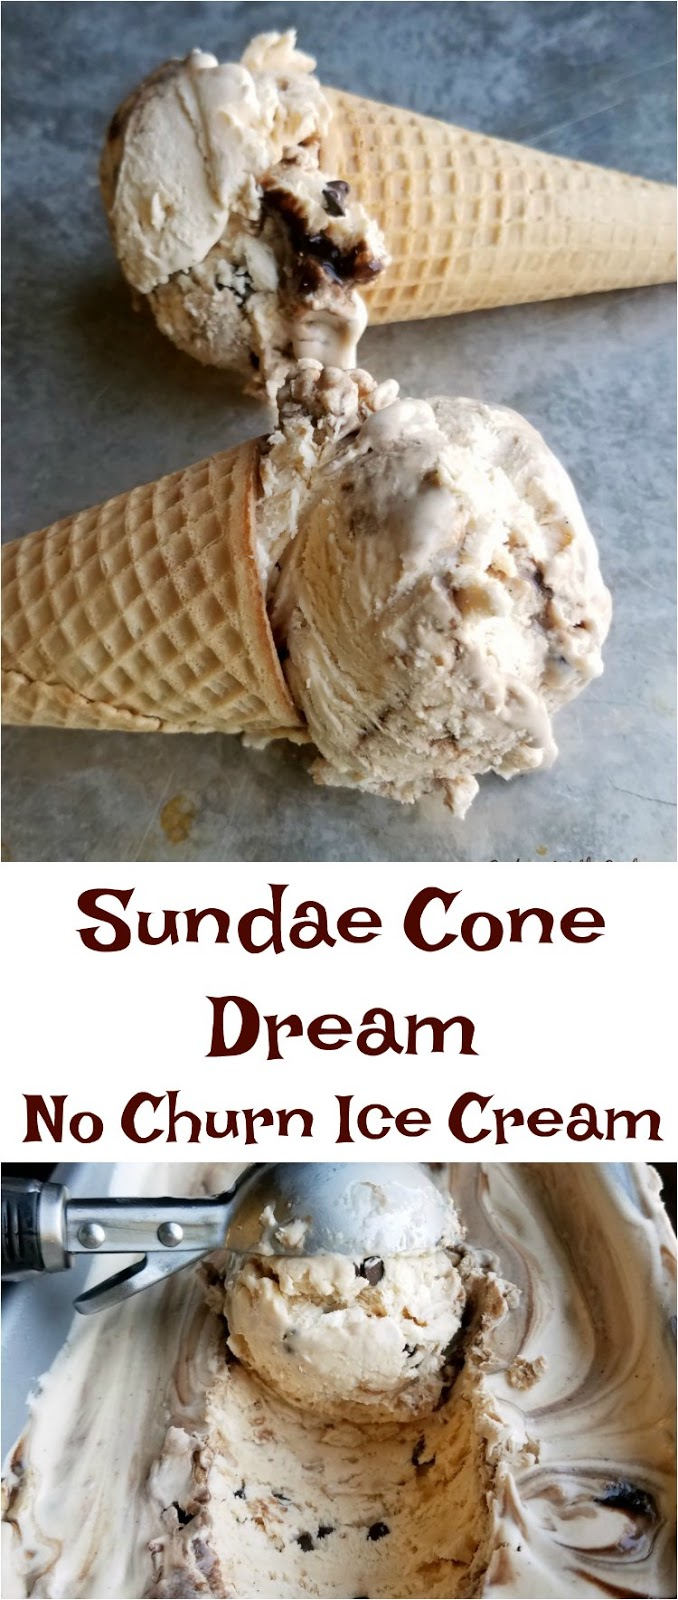 Super simple no churn ice cream sweetened with the goodness of dulce de leche and studded with bits of sugar cones, mini chocolate chips and a chocolate swirl. Make your sundae dreams come true with every bite!